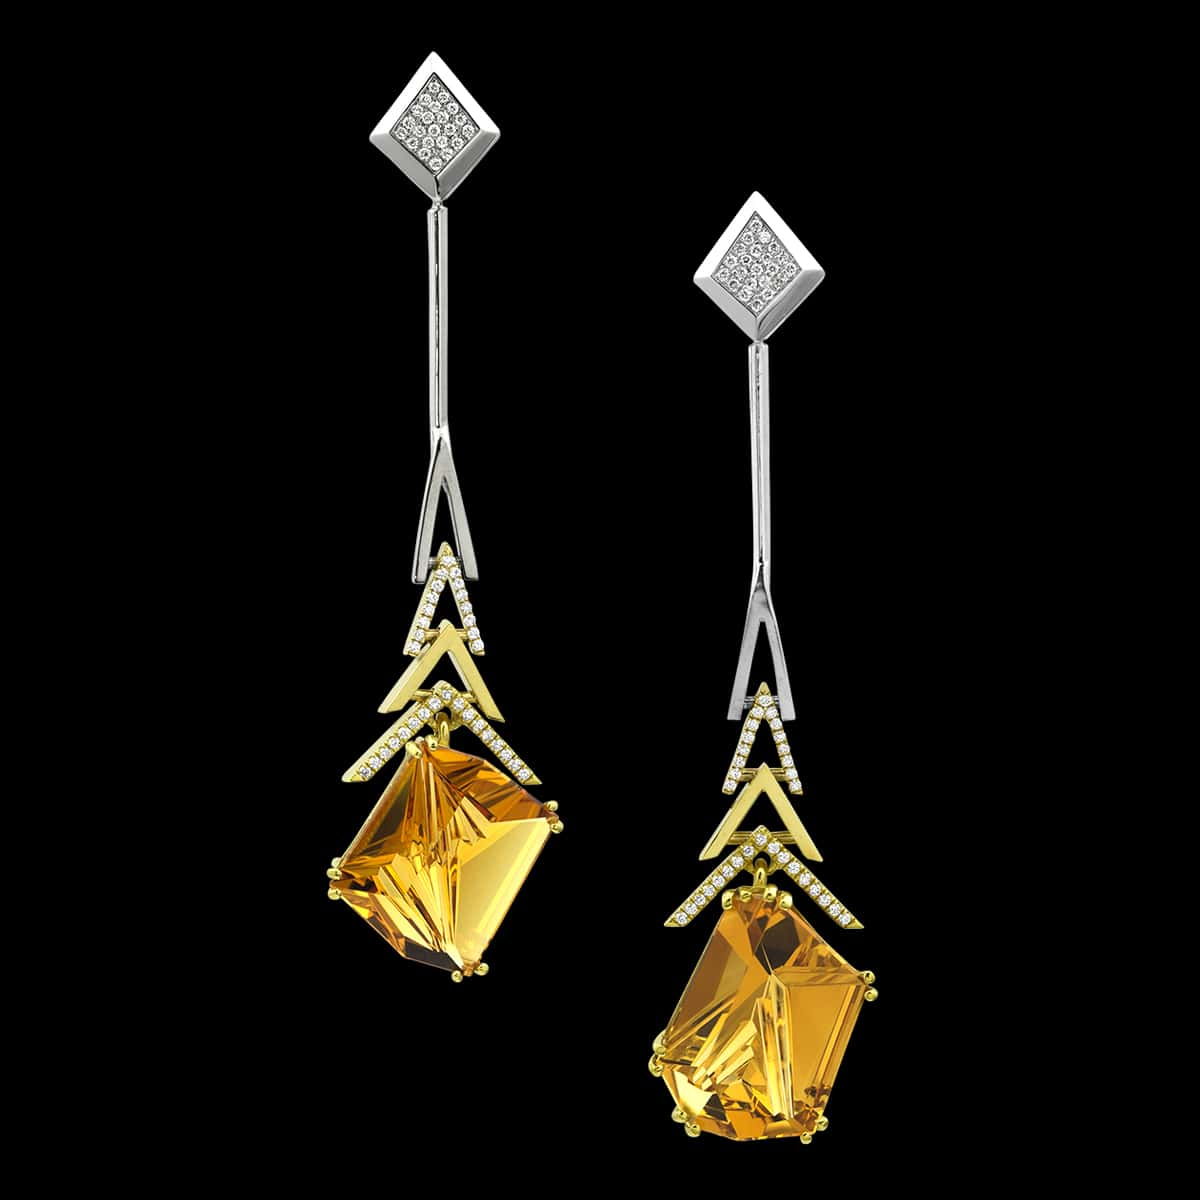 Munsteiner Gemstone Jewelry Crescendo Citrine Earrings